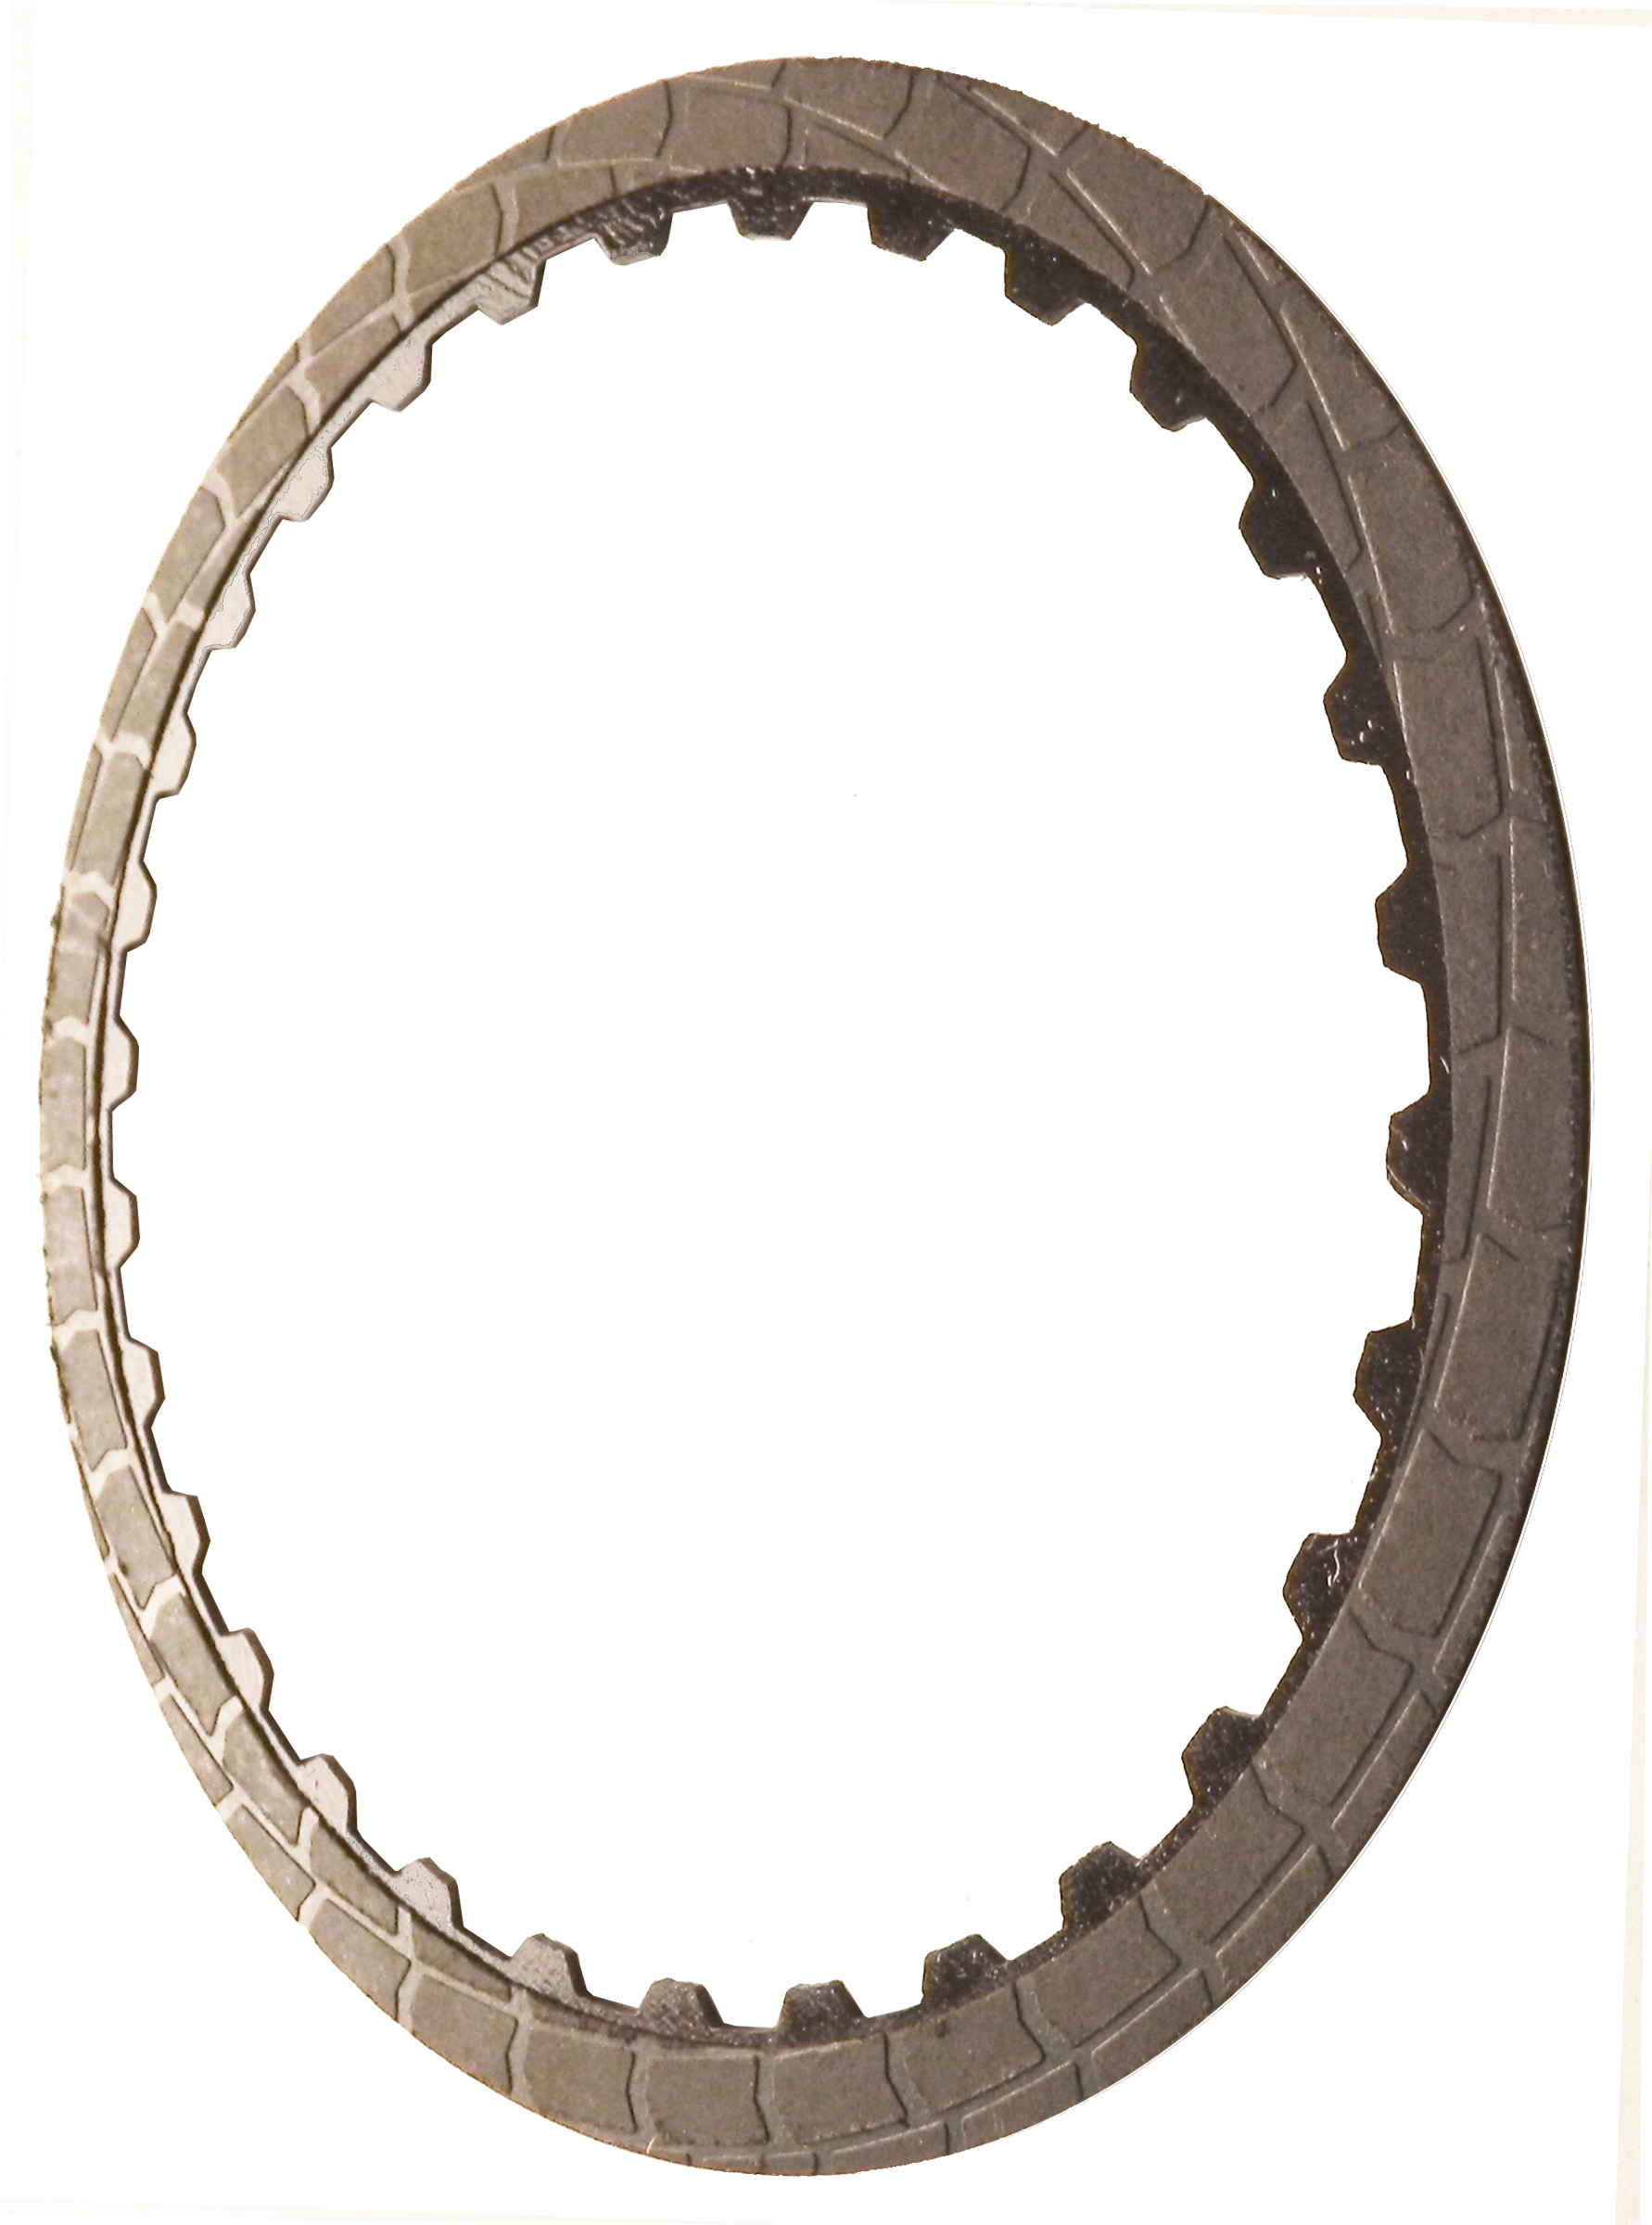 RH563510 | 2004-ON Friction Clutch Plate (HT) Hybrid Technology Coast Clutch Proprietary High Energy (HT)